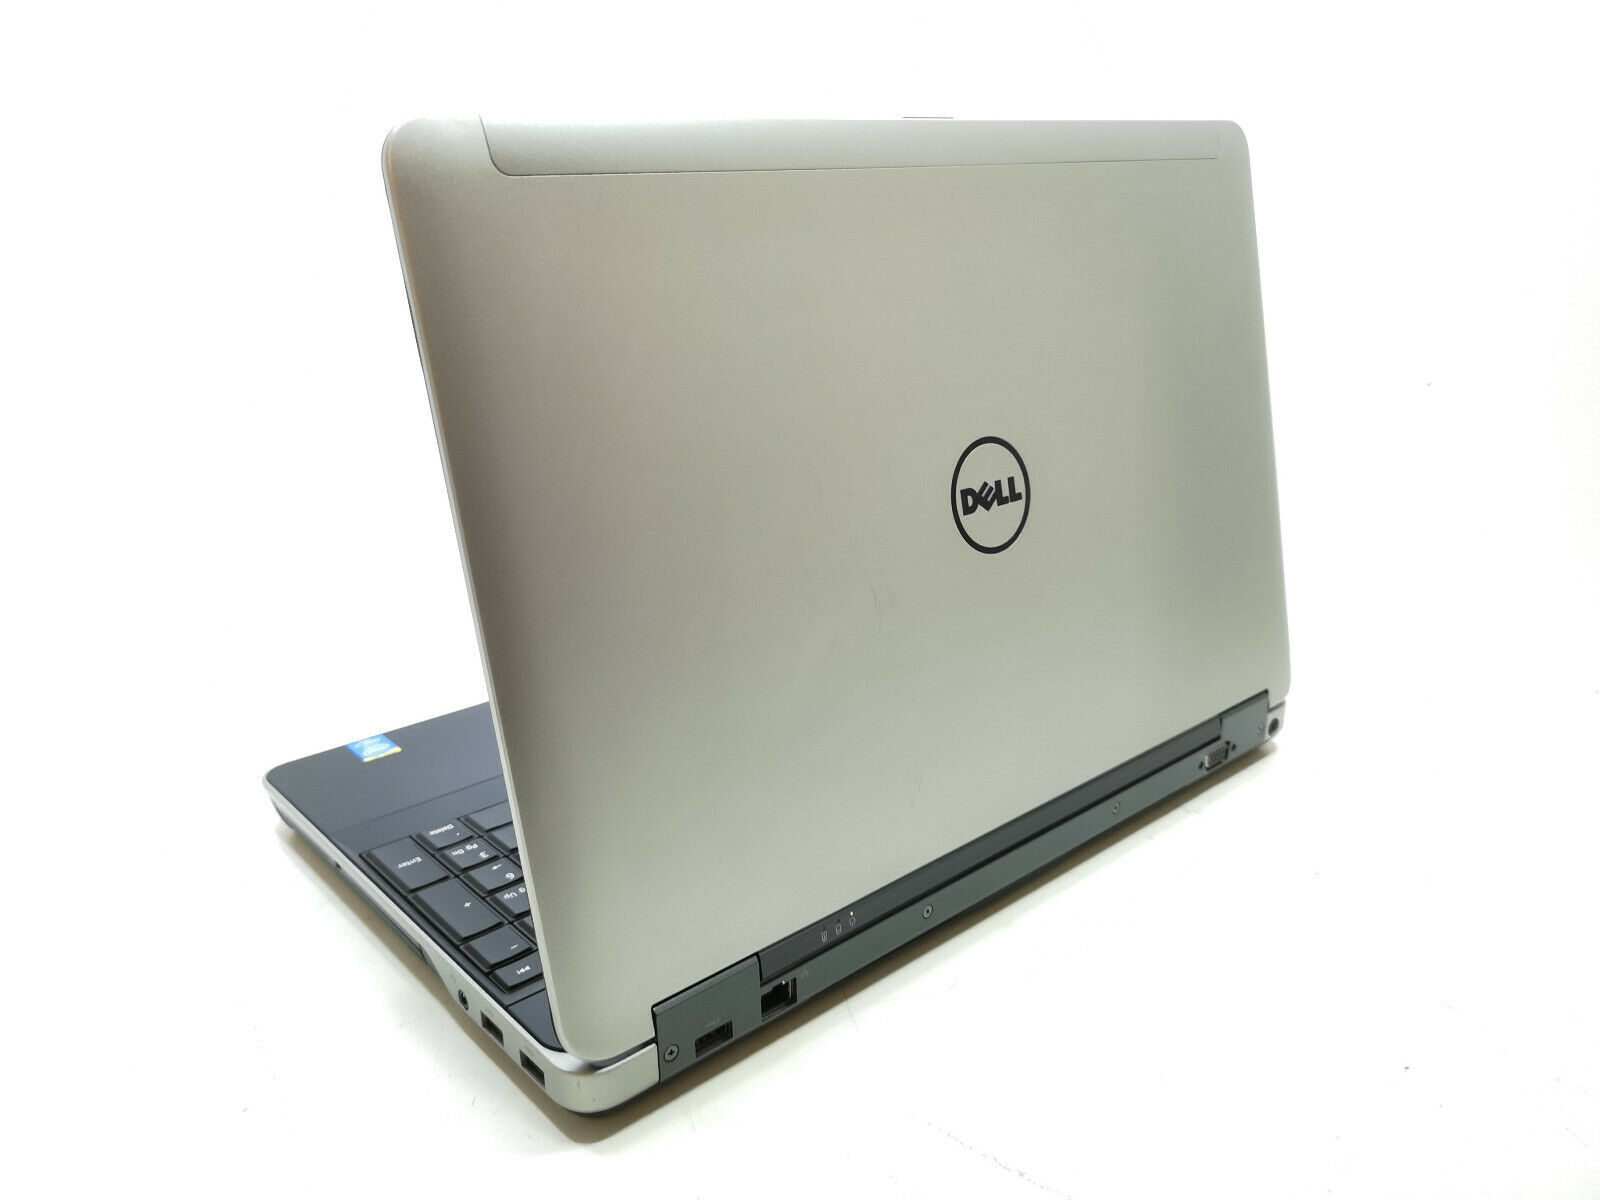 Dell Precision M2800 No 6